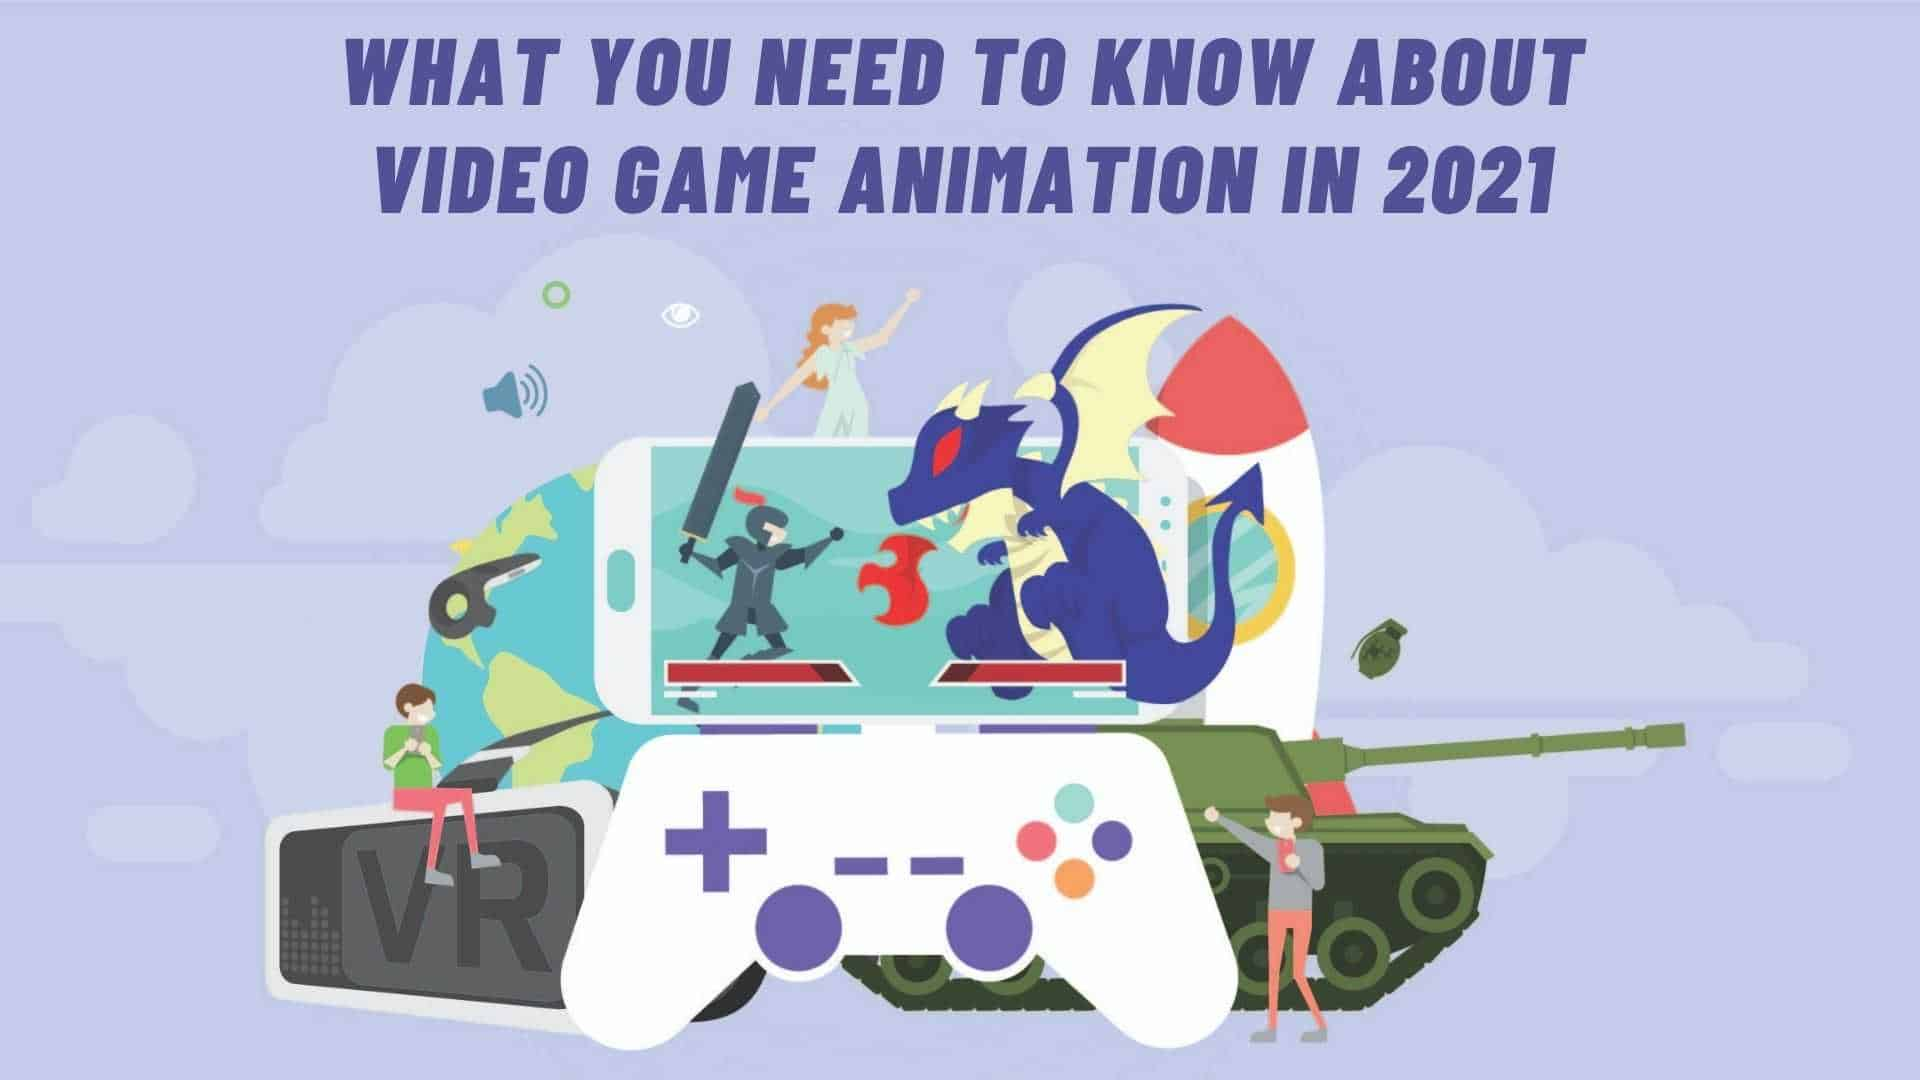 Hot to make animation for Video Games